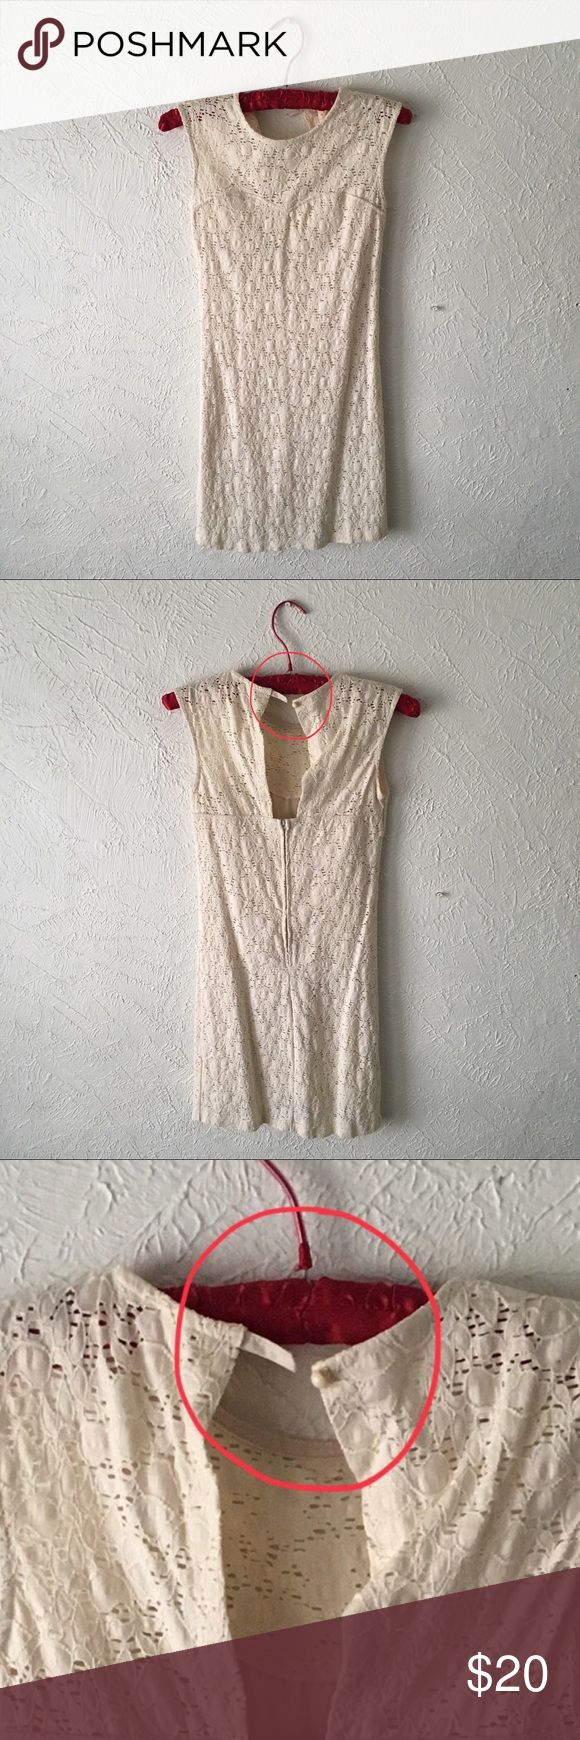 Cream cocktail dress ☁️ white lace cocktail dress  ☁️ worn only once  ☁️ i am 5'3ish and it goes above knee  ☁️ tag says large but fits more like a medium in my opinion  ☁️ selling discounted because of slight but easily repaired damage: missing button loop  ☁️ last photo is showing this same dress but in tag size medium - just to show fit    #dress #whitedress #cocktaildress #wedding #weddingguest #occasion #partydress #party #lace #whitelace Dresses Mini